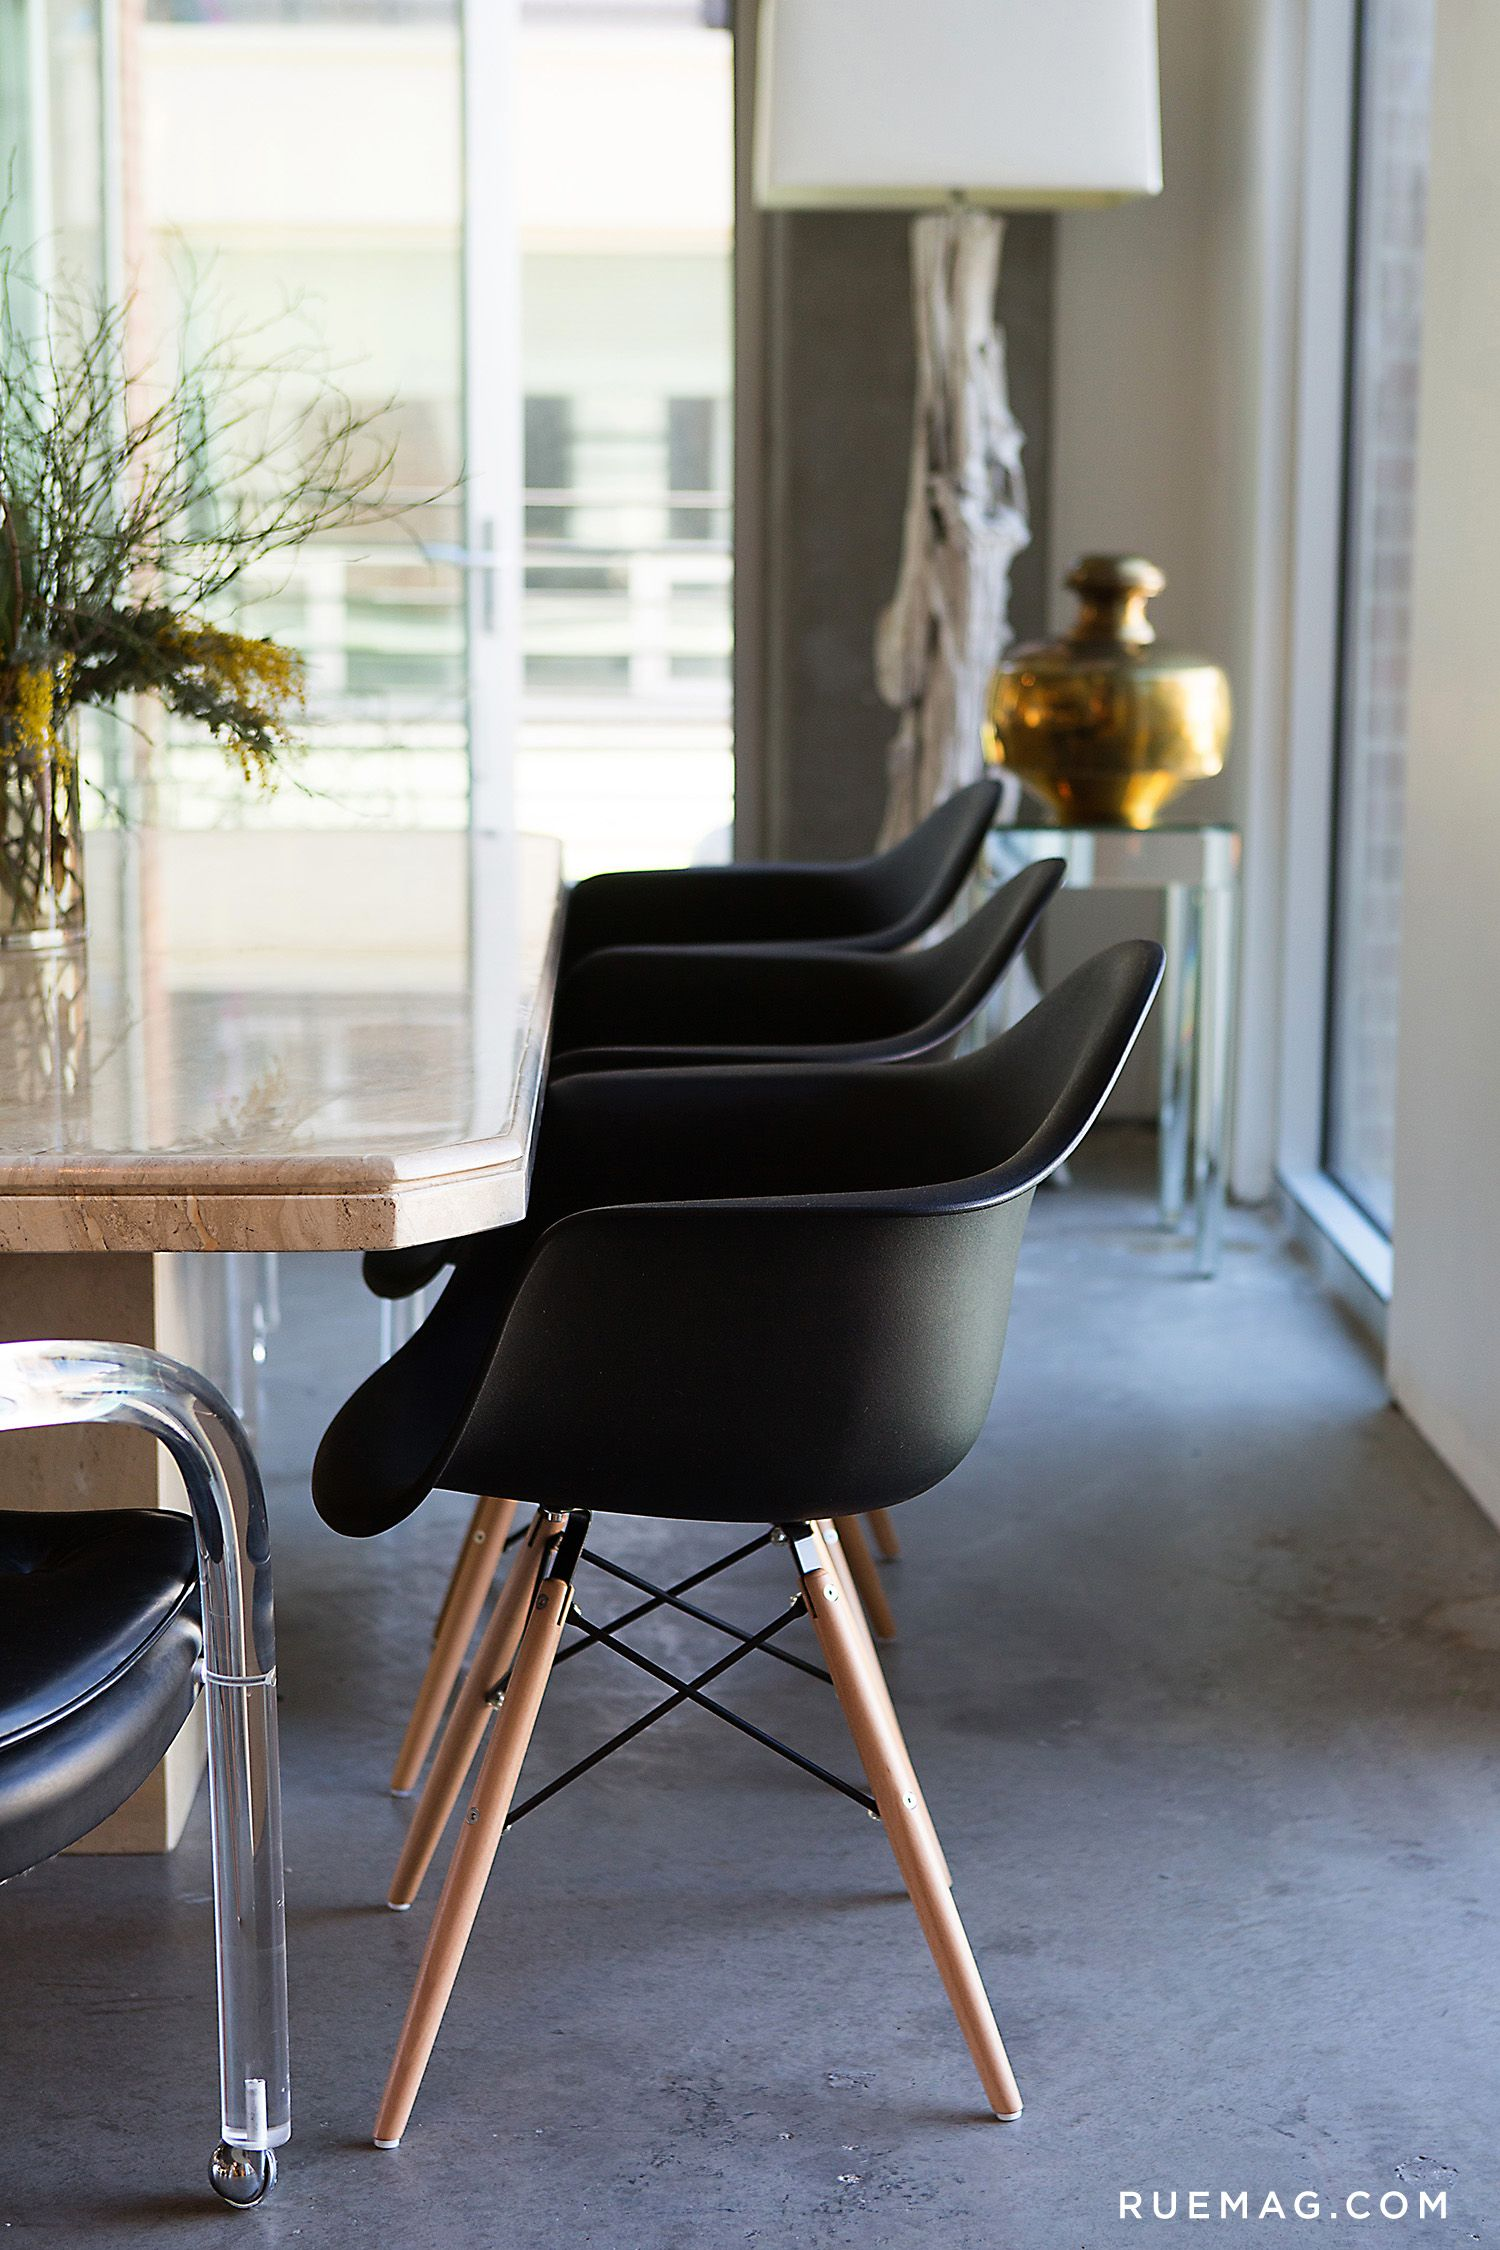 Swoon The Studio A Dallas Design Firm With Memorable Style Rue